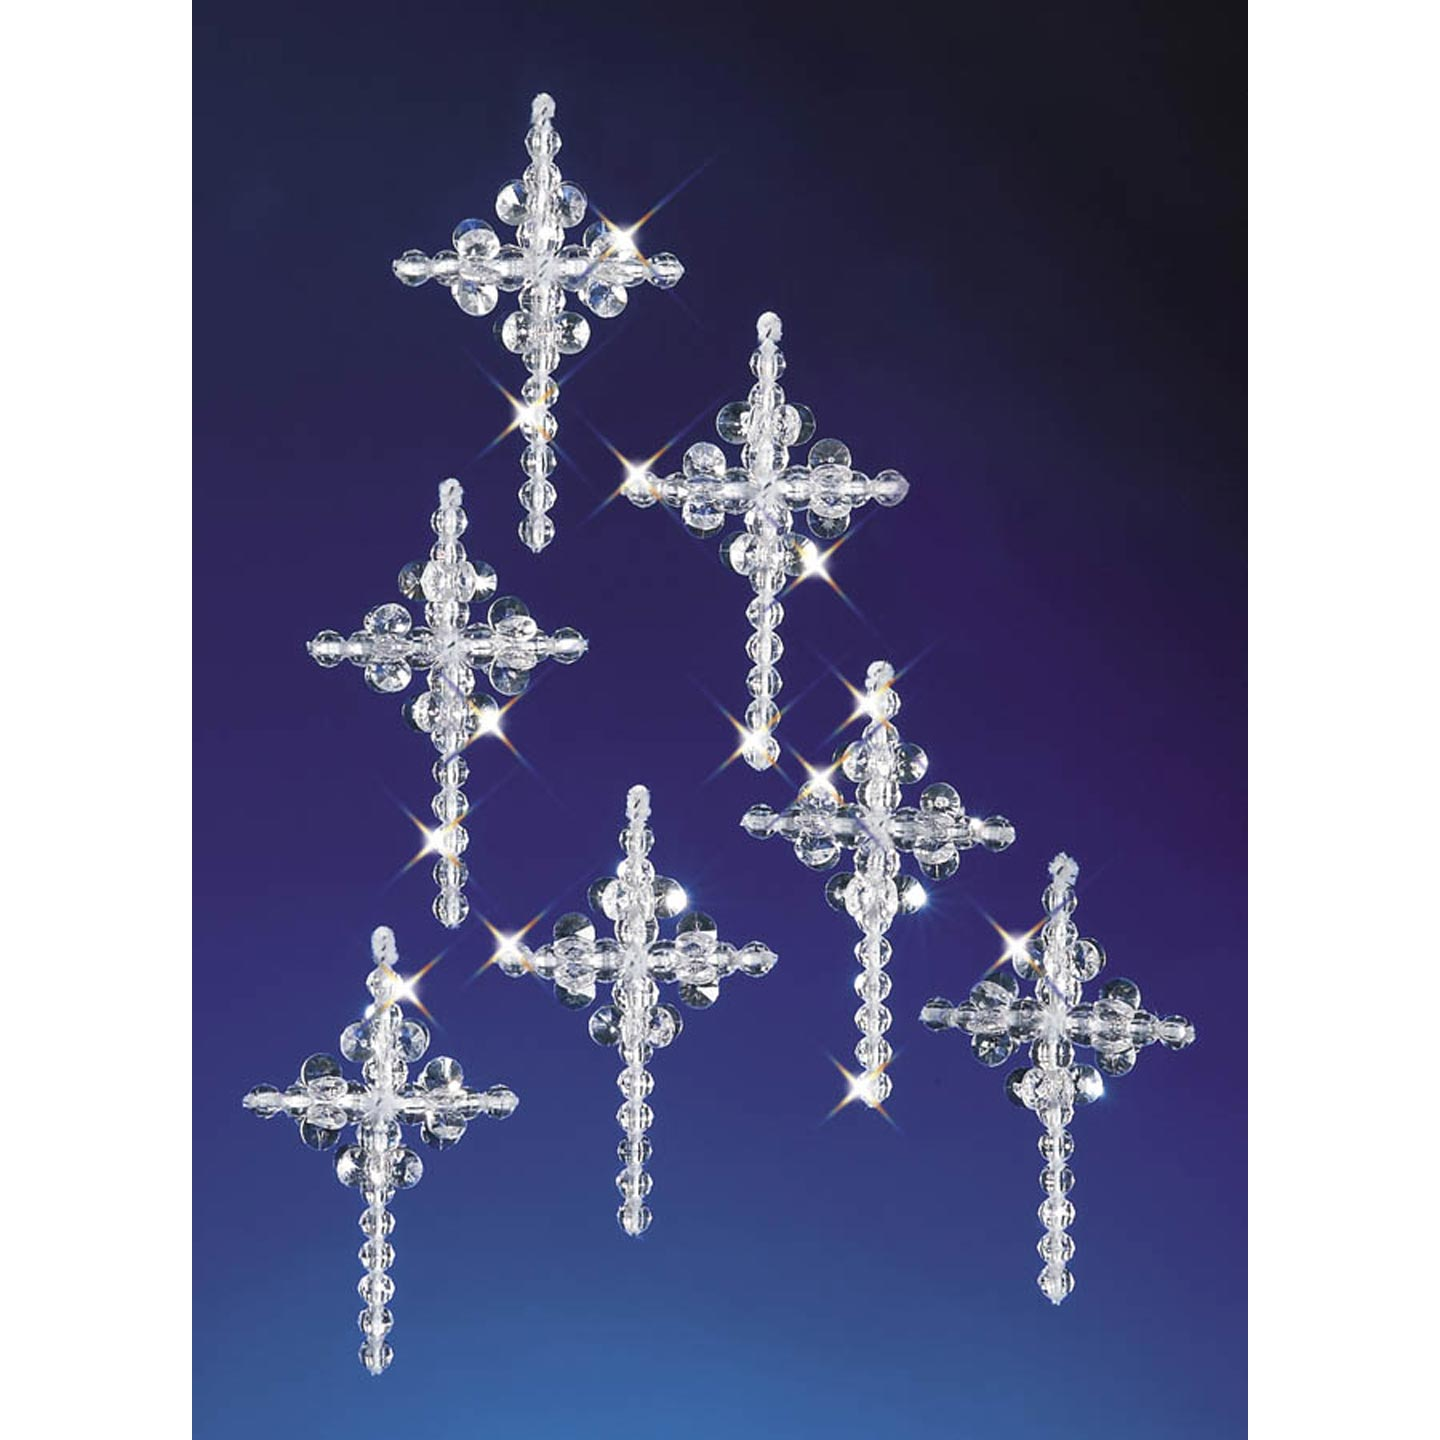 The Beadery Christmas Ornament Craft Kits - Cross